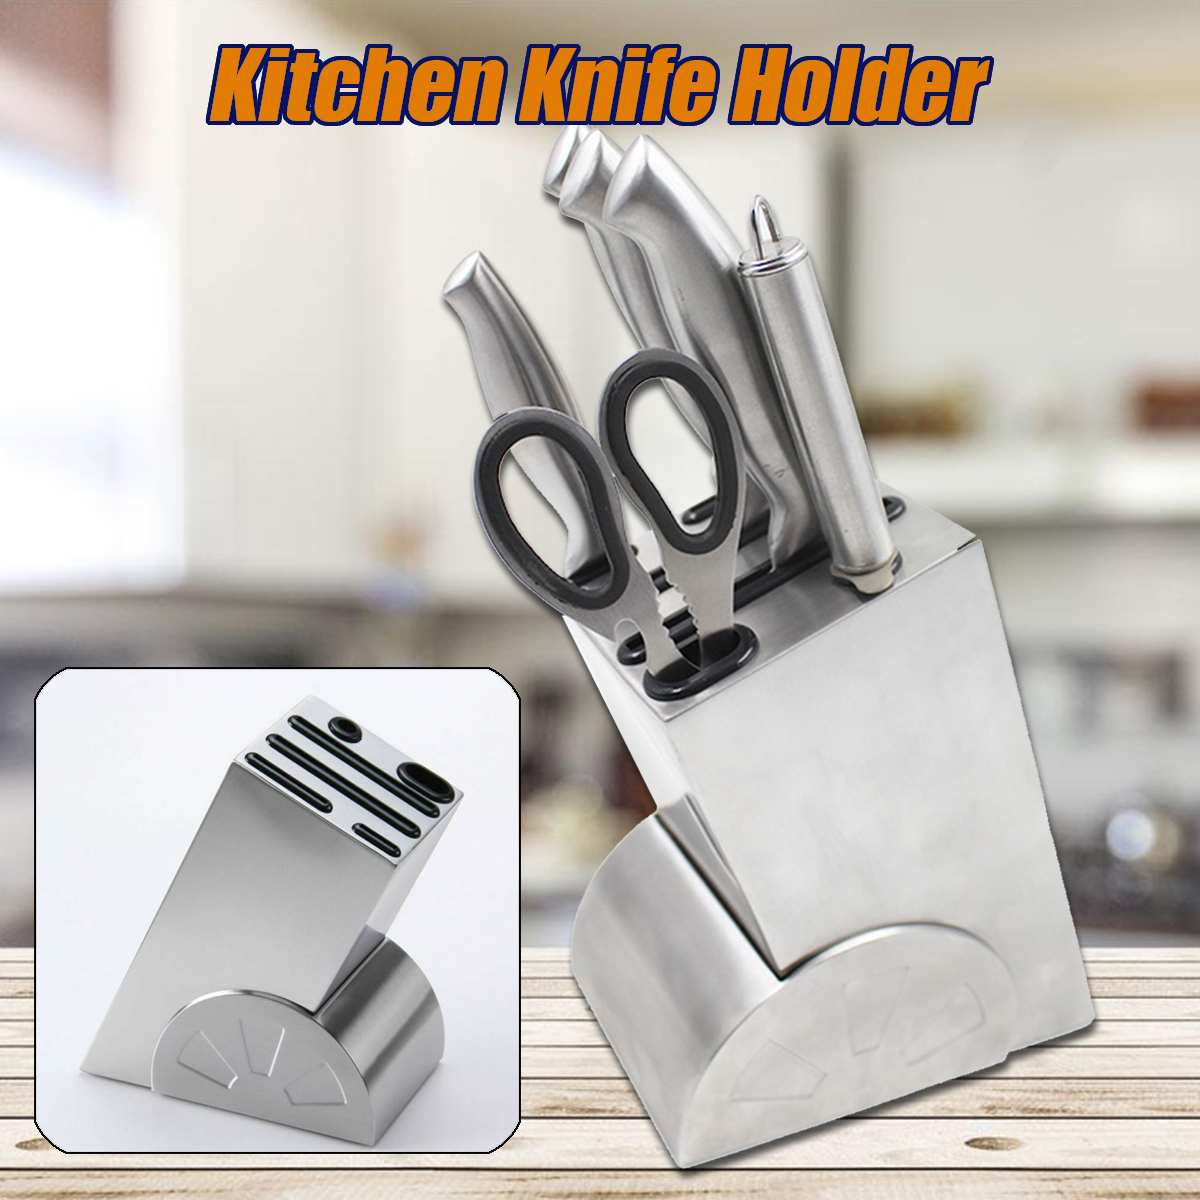 Kitchen Knife Block Knives Holder Organizer Metal Rack Storage Block Stainless Steel Knife Rest Shelf Tools Packing Accessories